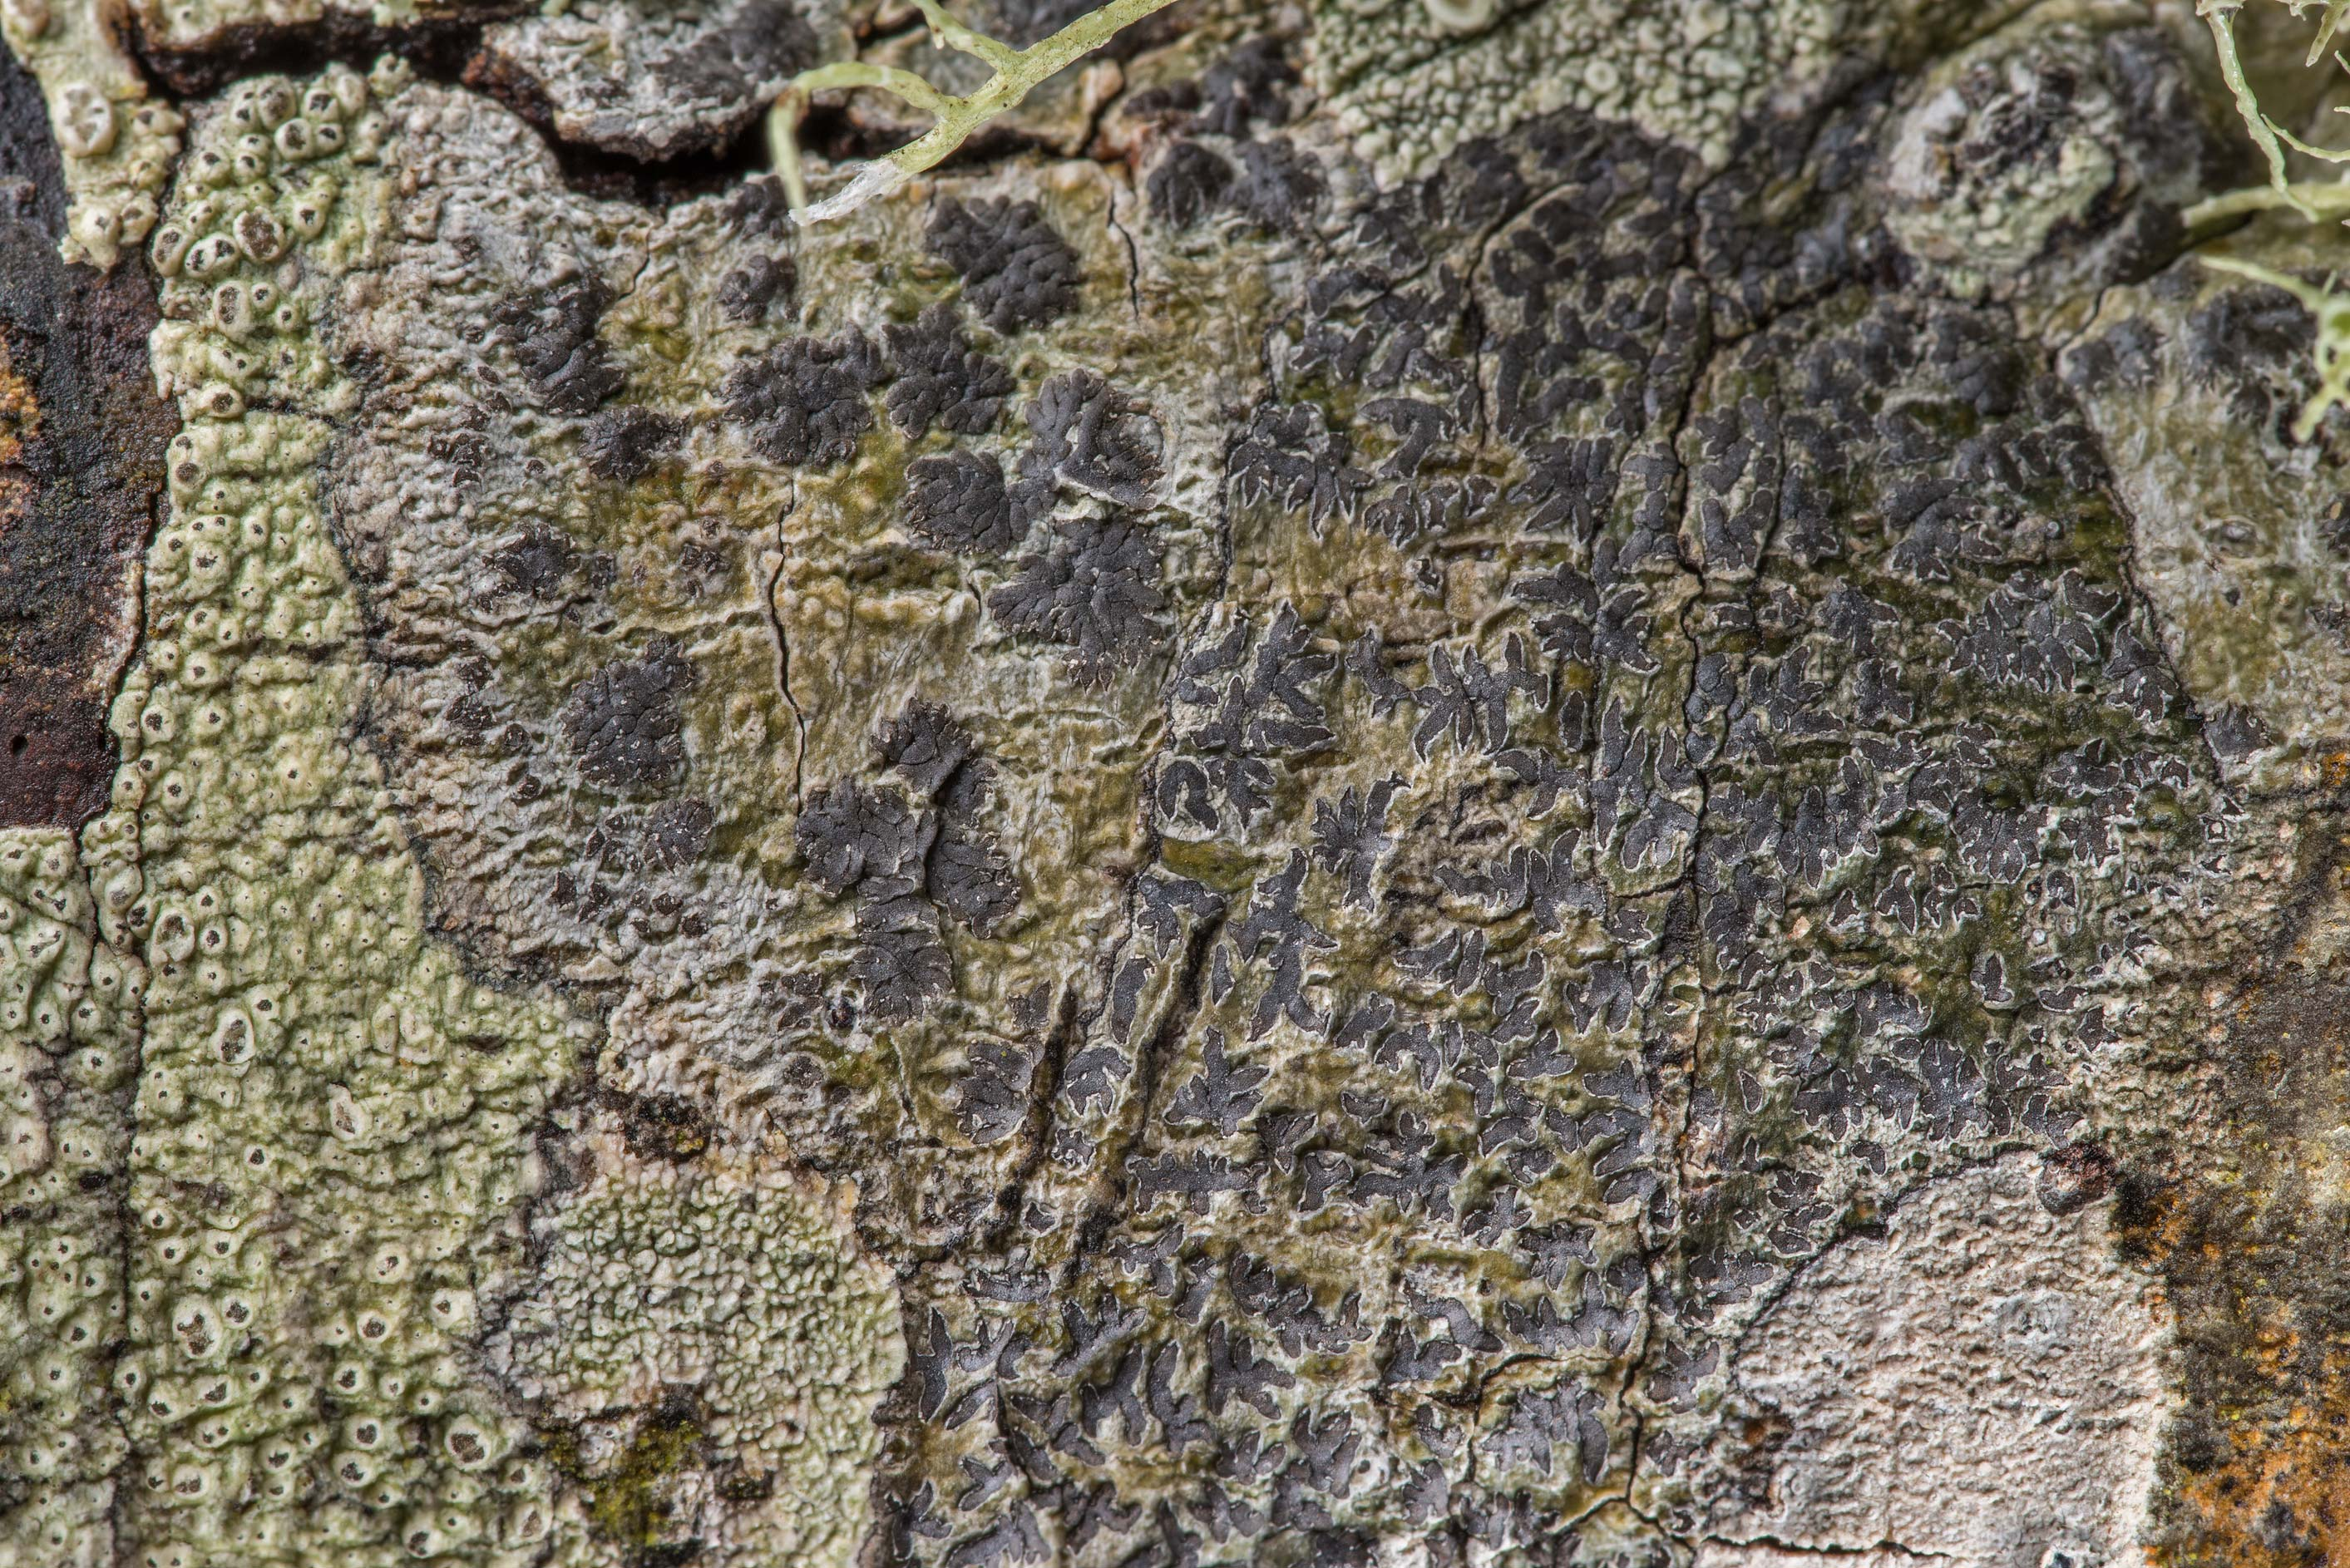 Phaeographis lichen on an oak in Lick Creek Park. College Station, Texas